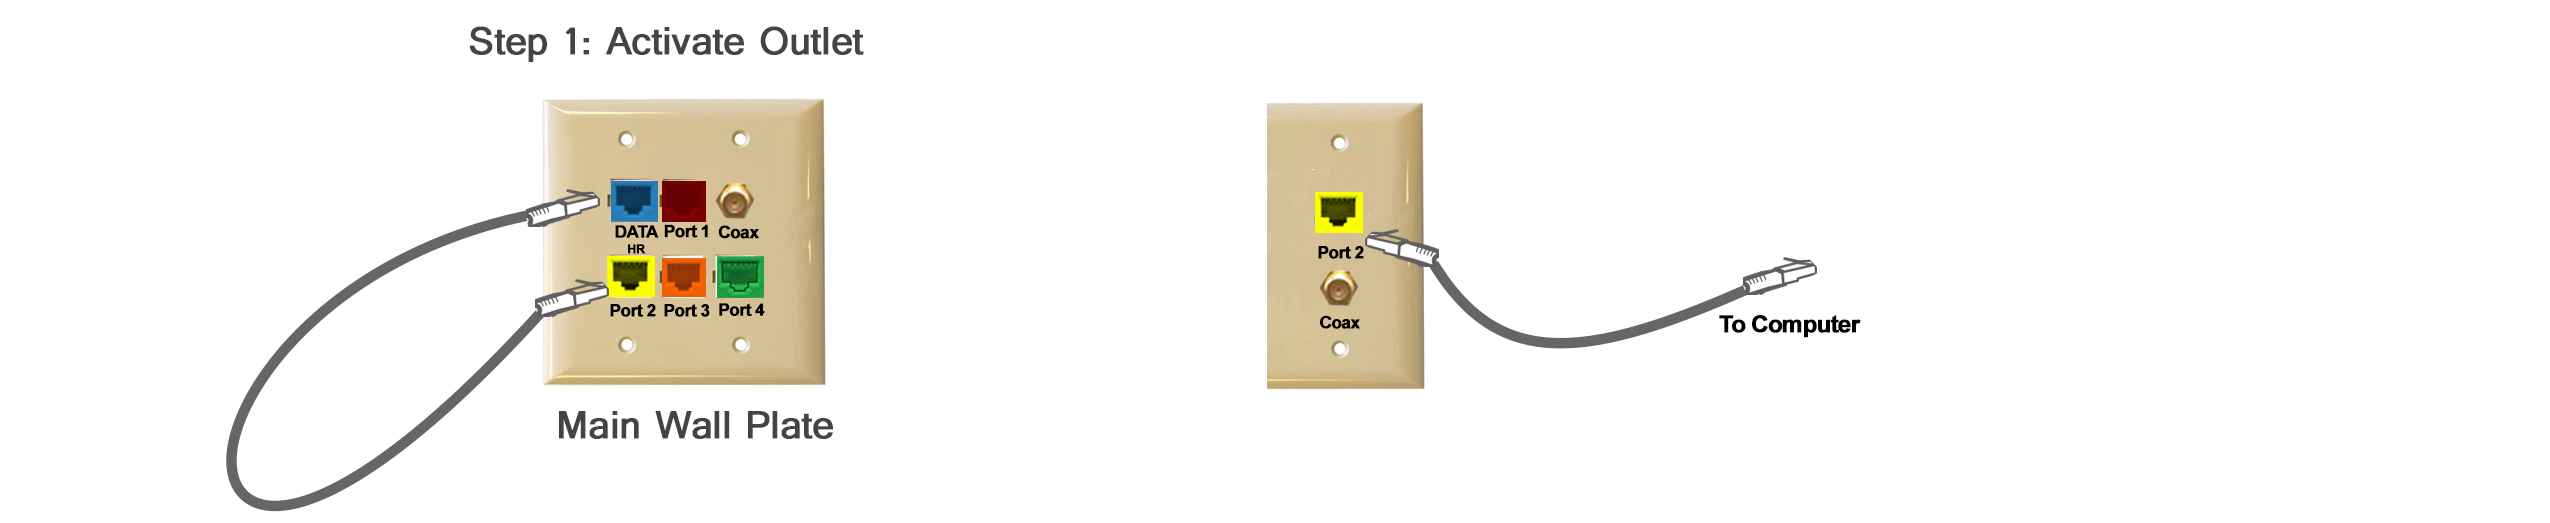 support on the cross connect wall plate connect the blue outlet to the matching outlet using a cat5 ethernet cable